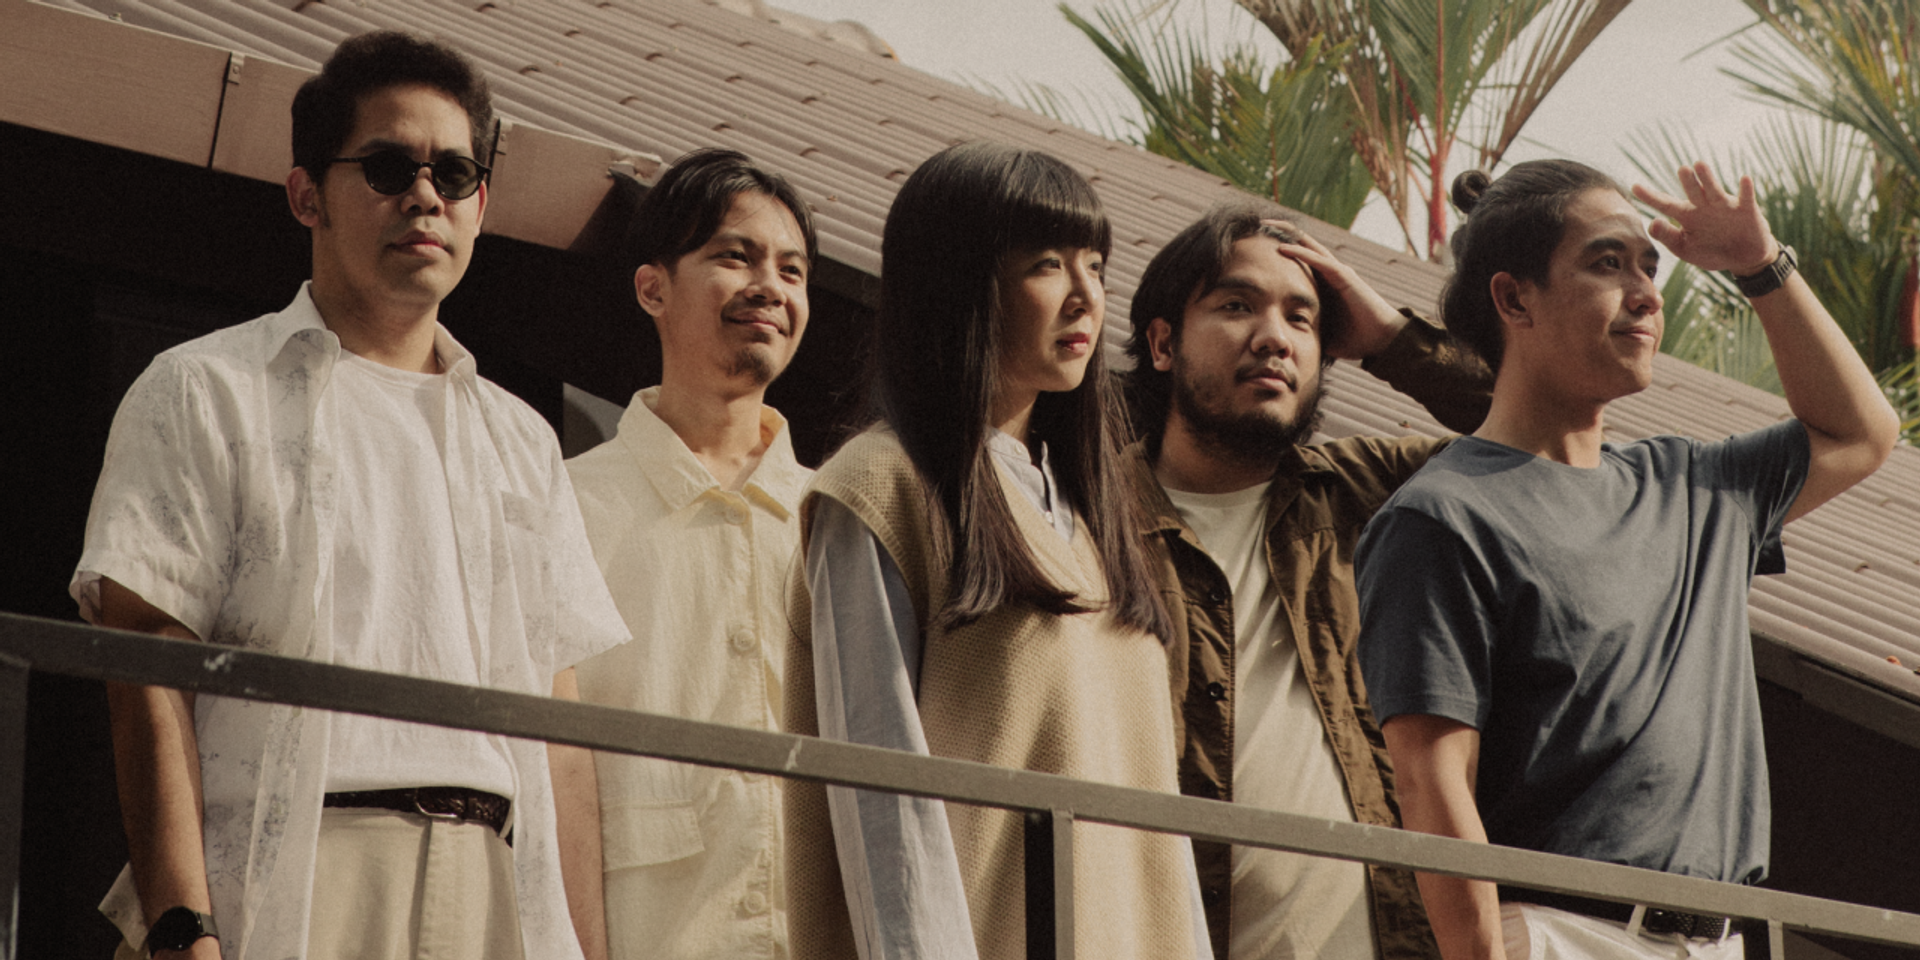 Introducing: Thai indie-pop band Gym and Swim on writing tropical tunes, working with Sunset Rollercoaster, and more